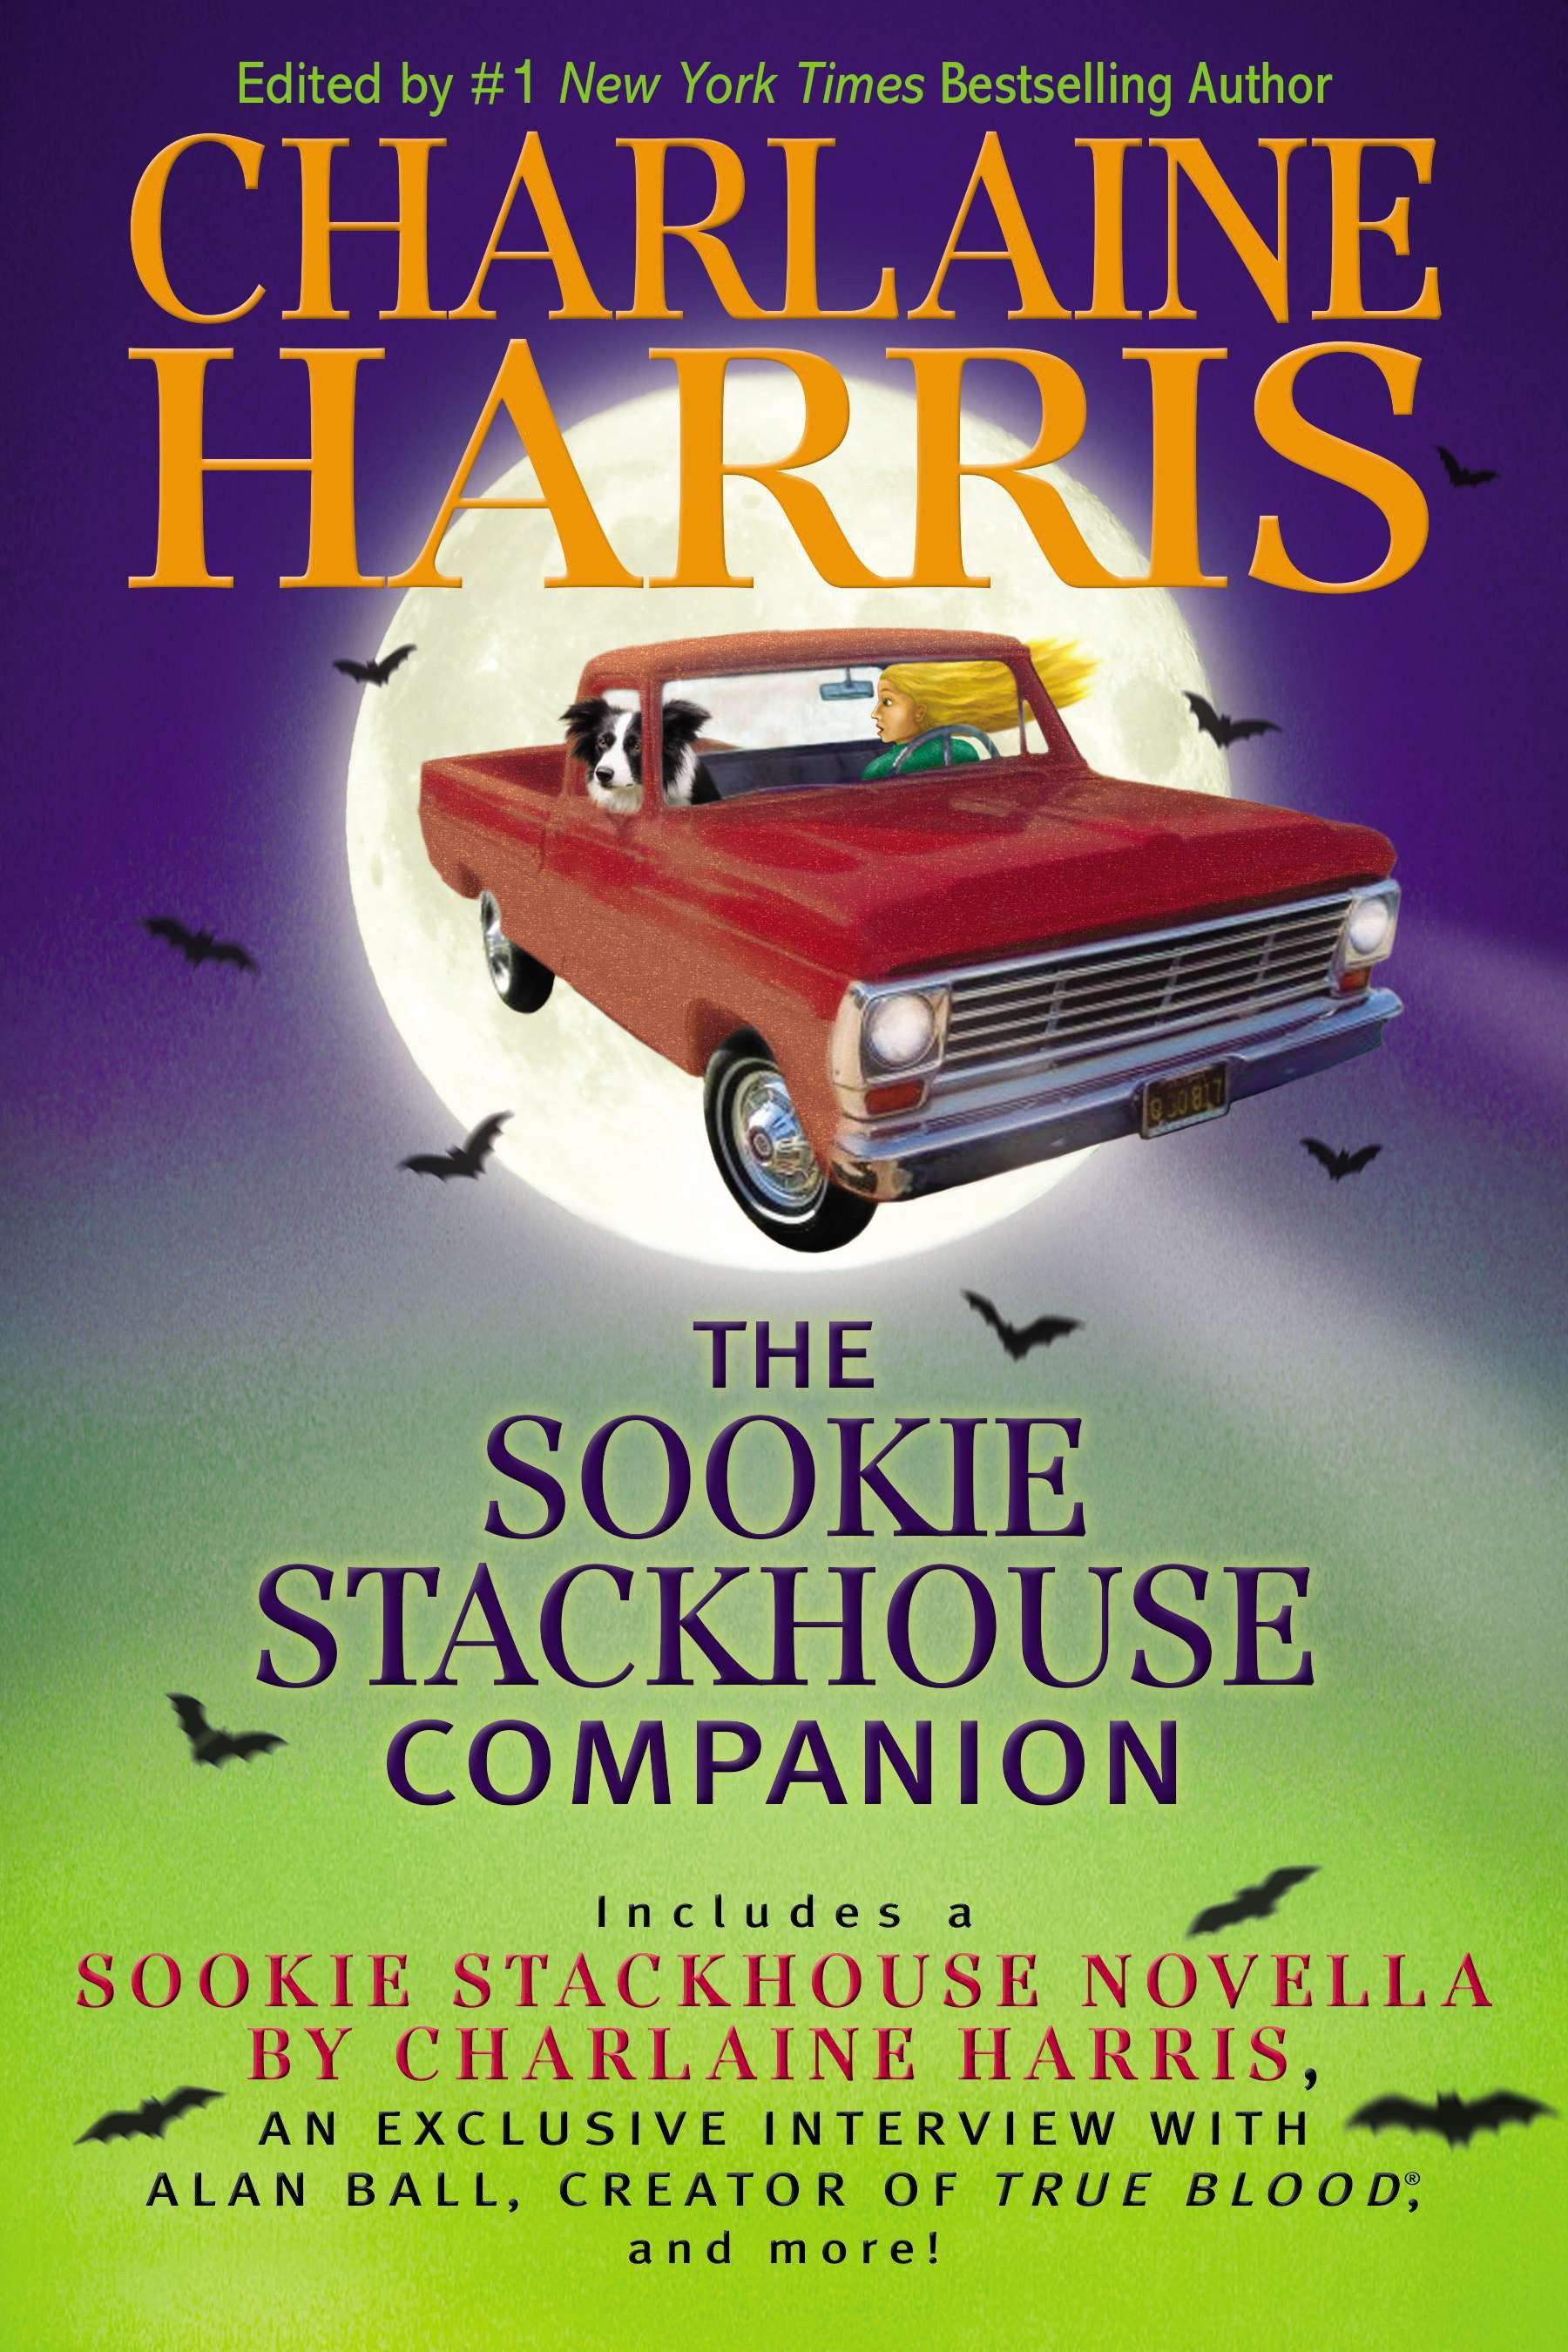 The Sookie Stackhouse companion cover image